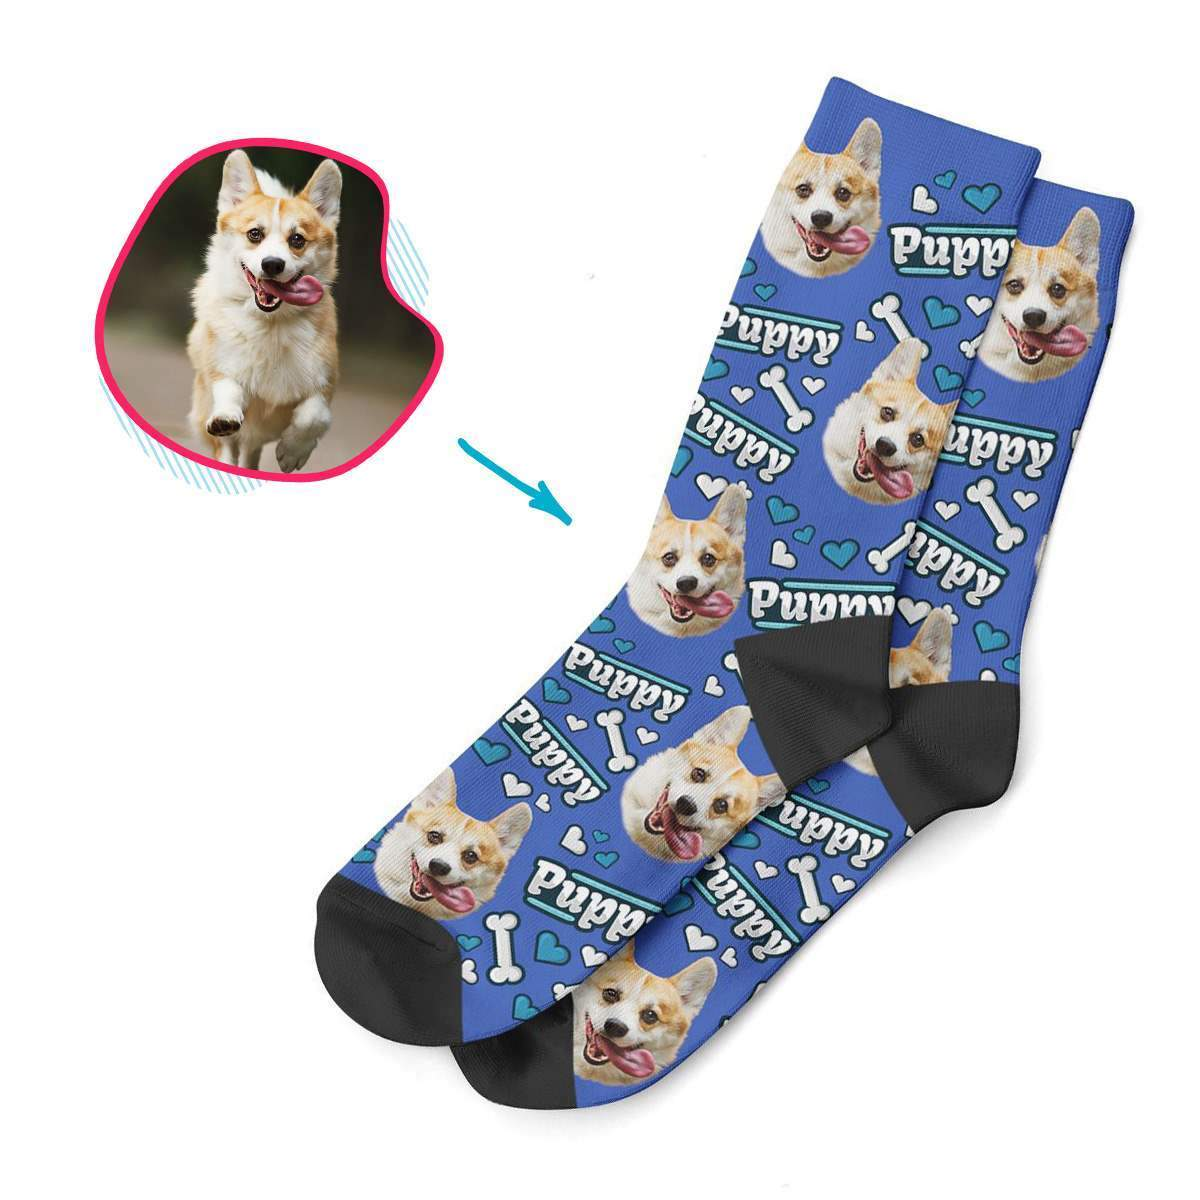 darkblue Puppy socks personalized with photo of face printed on them